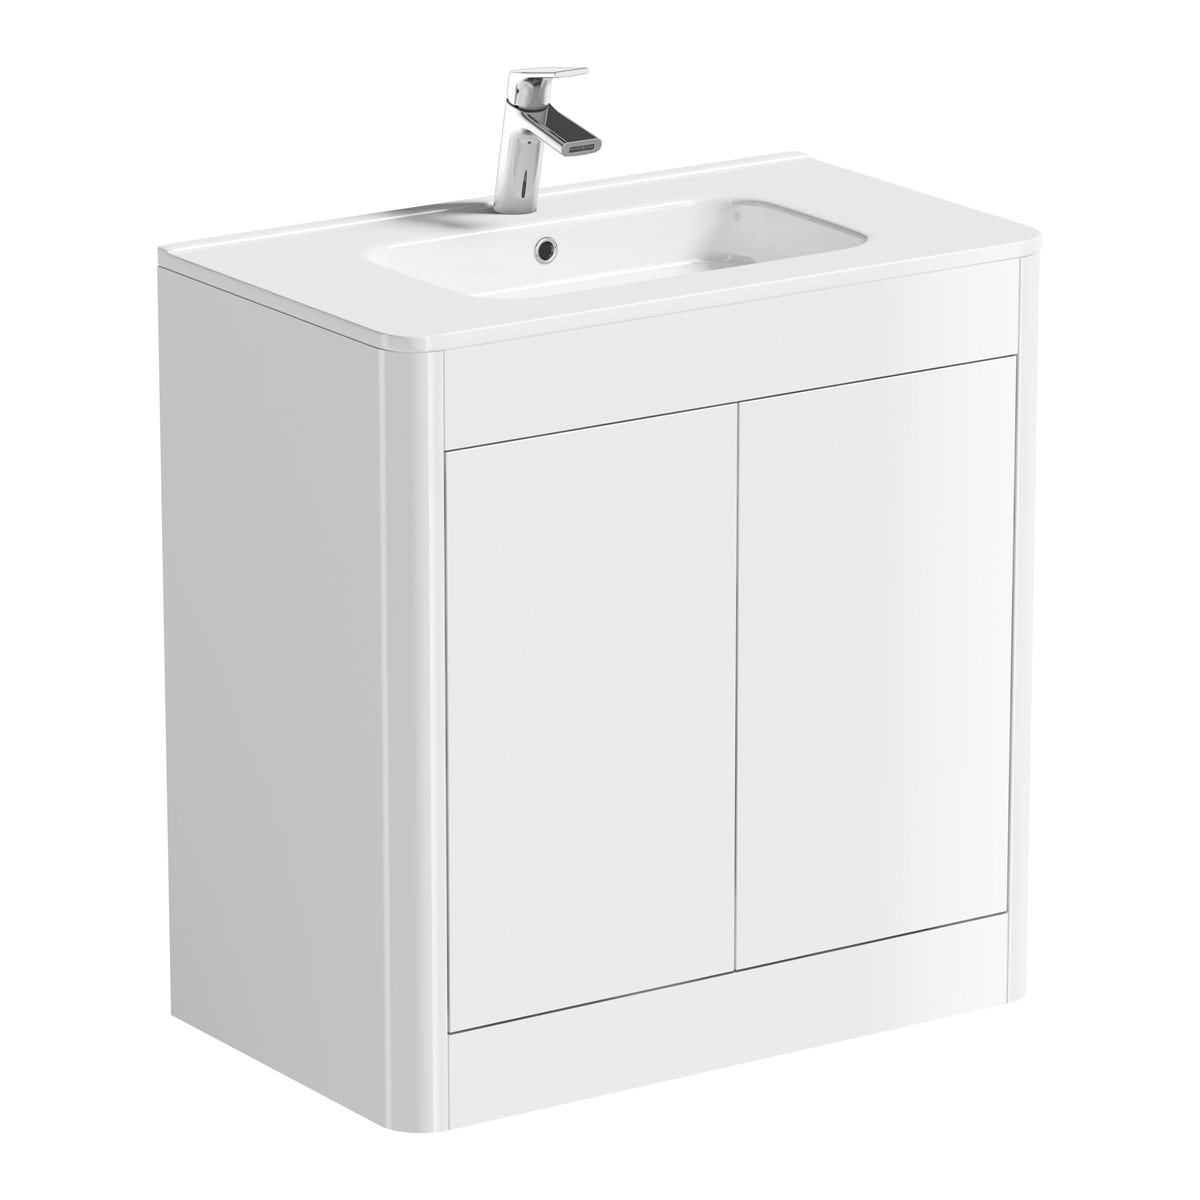 Mode Carter ice white floor mounted vanity unit and basin 800mm